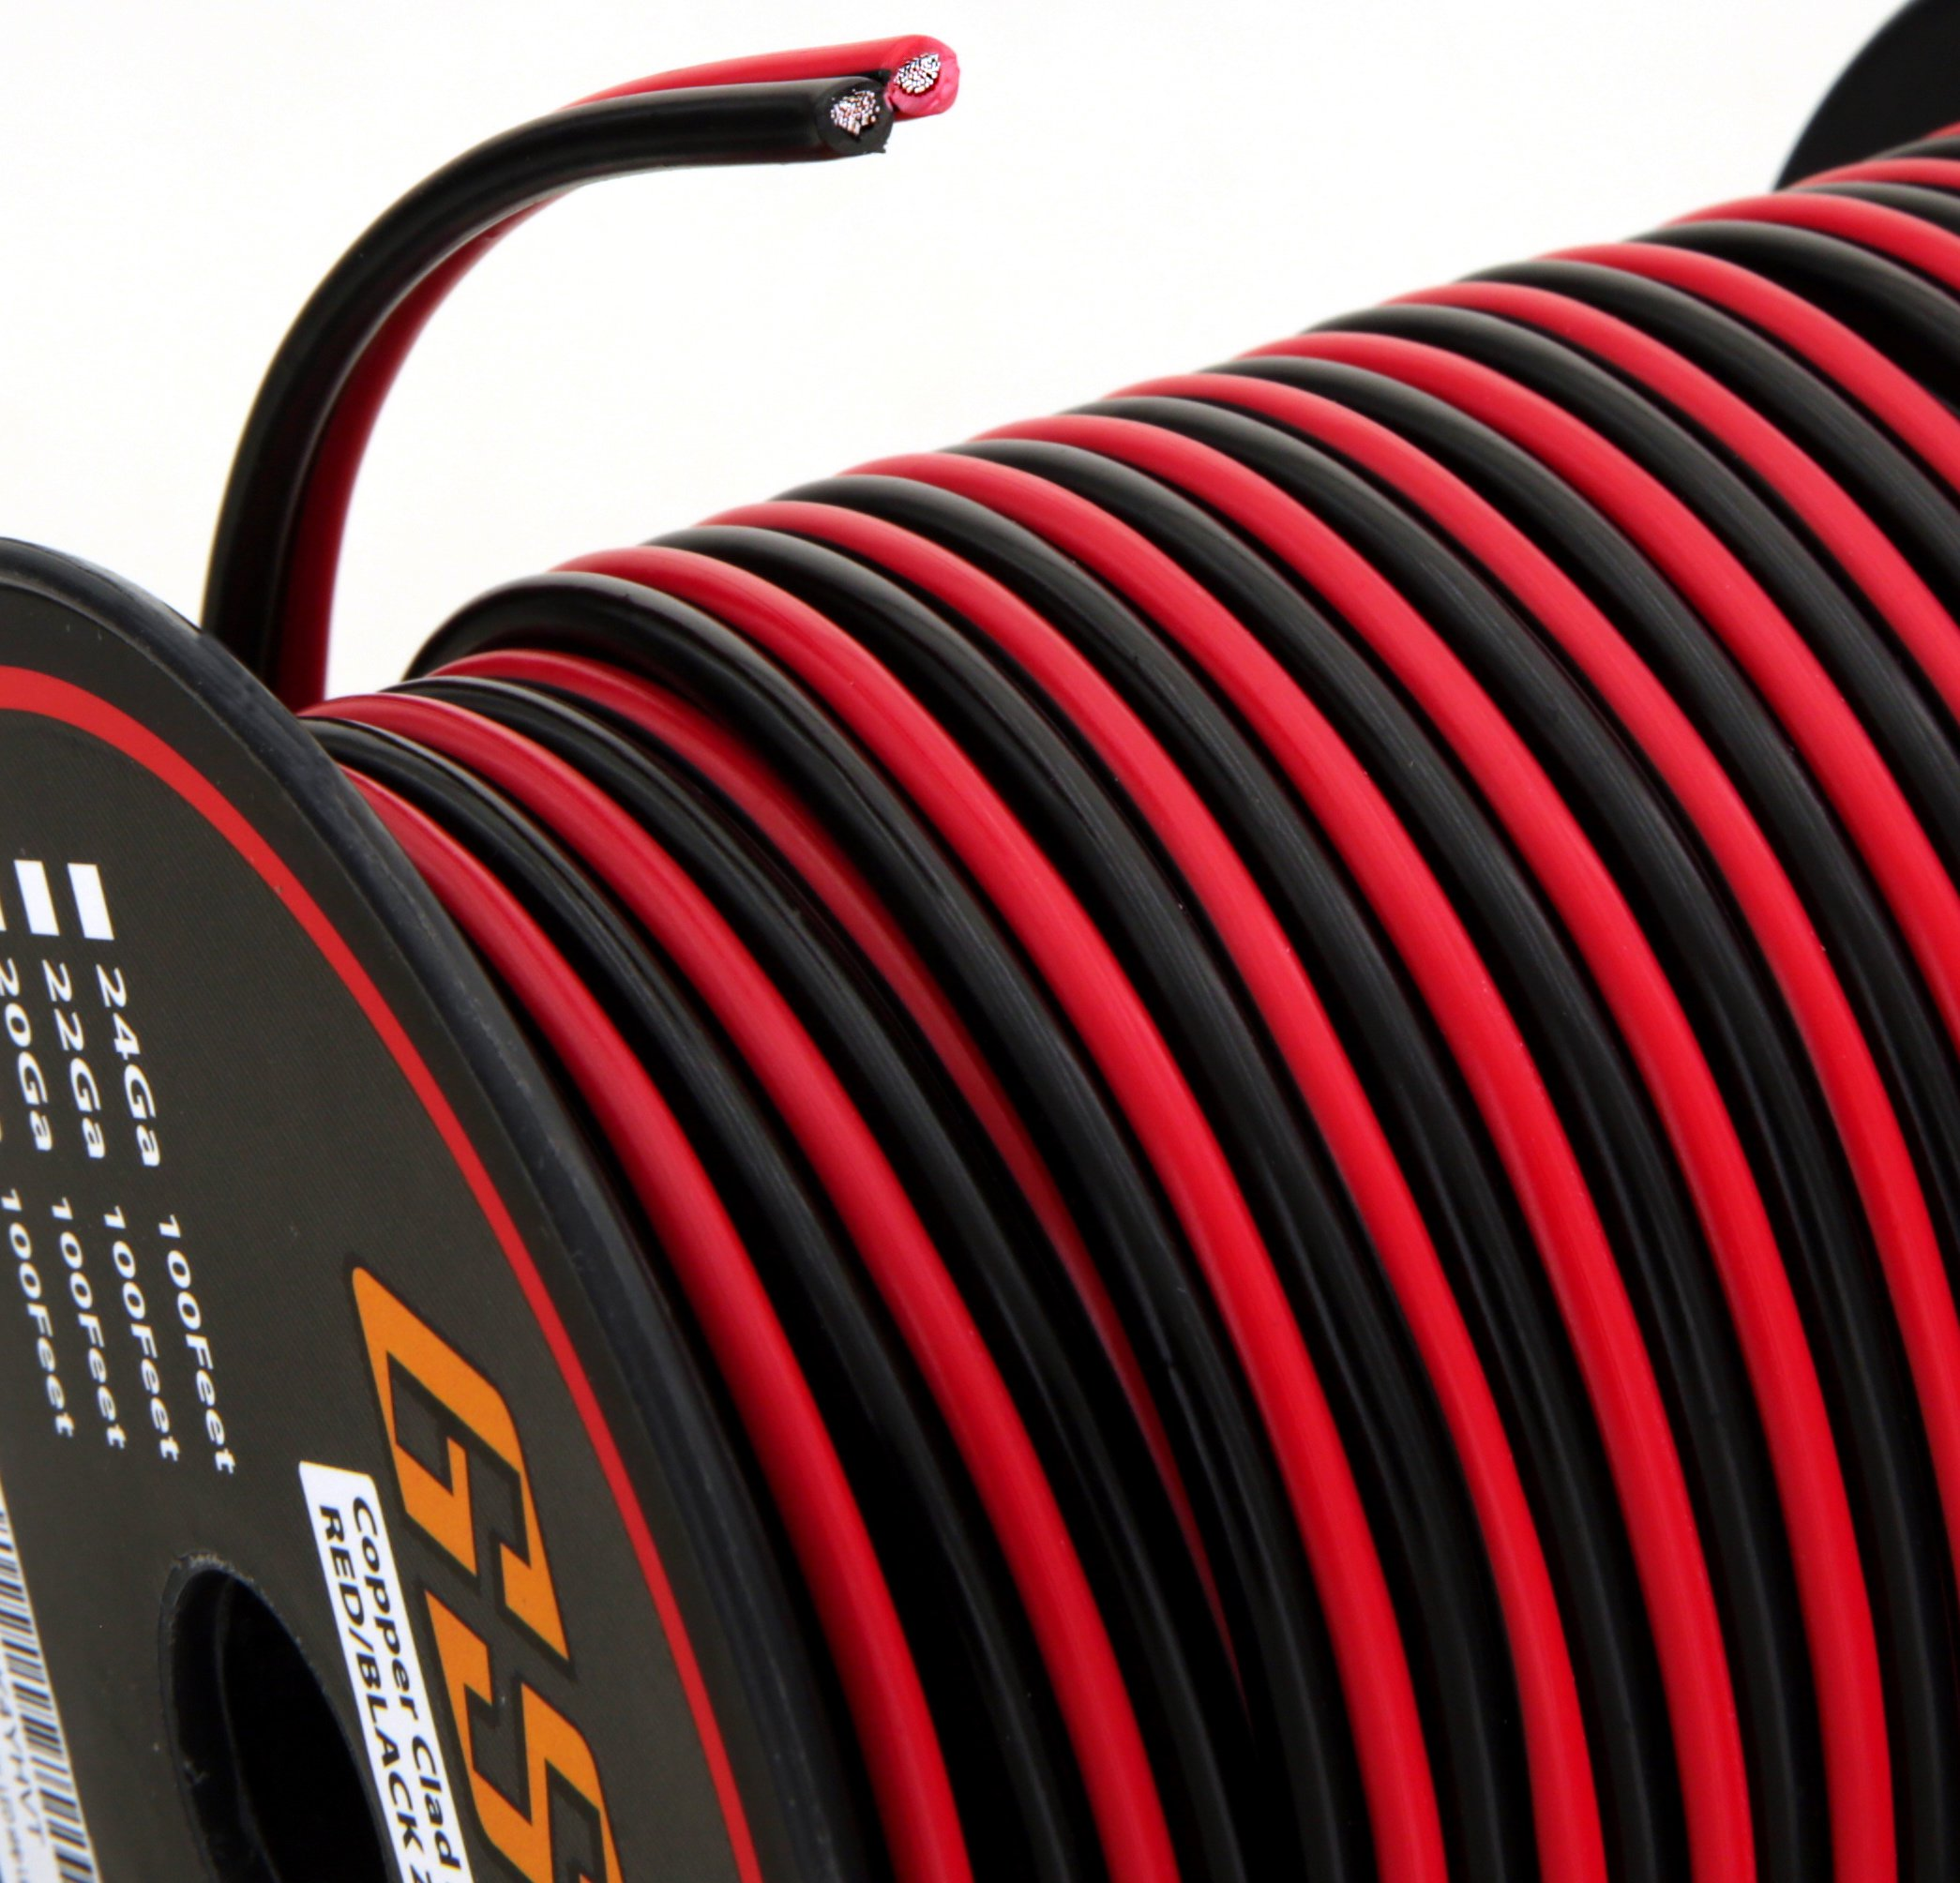 Gs Power 12 Ga Gauge 100 Feet Cca Copper Clad Aluminum Red Black 2 Wiring Conductor Bonded Zip Cord Speaker Cable For Car Audio Home Theater Led Light